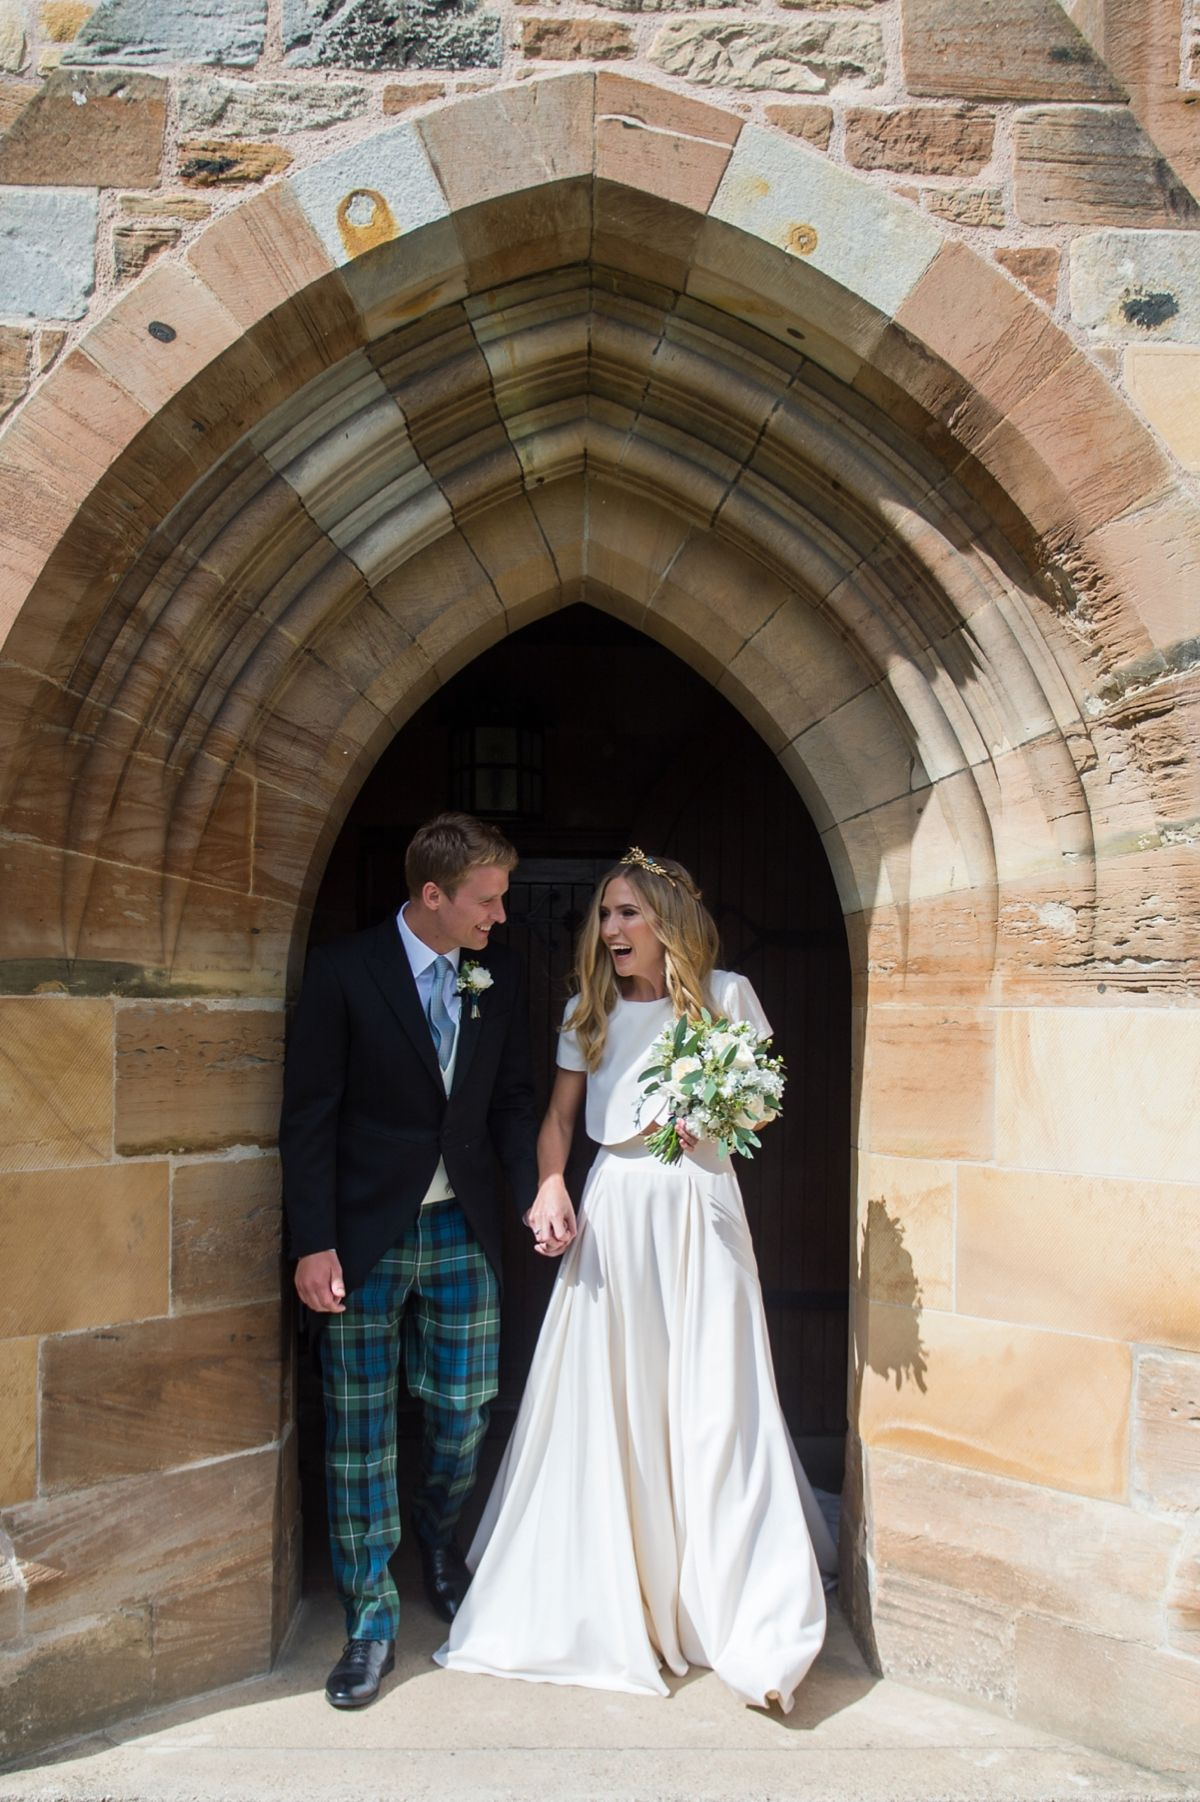 An elizabeth stuart gown for a grand scottish wedding dream